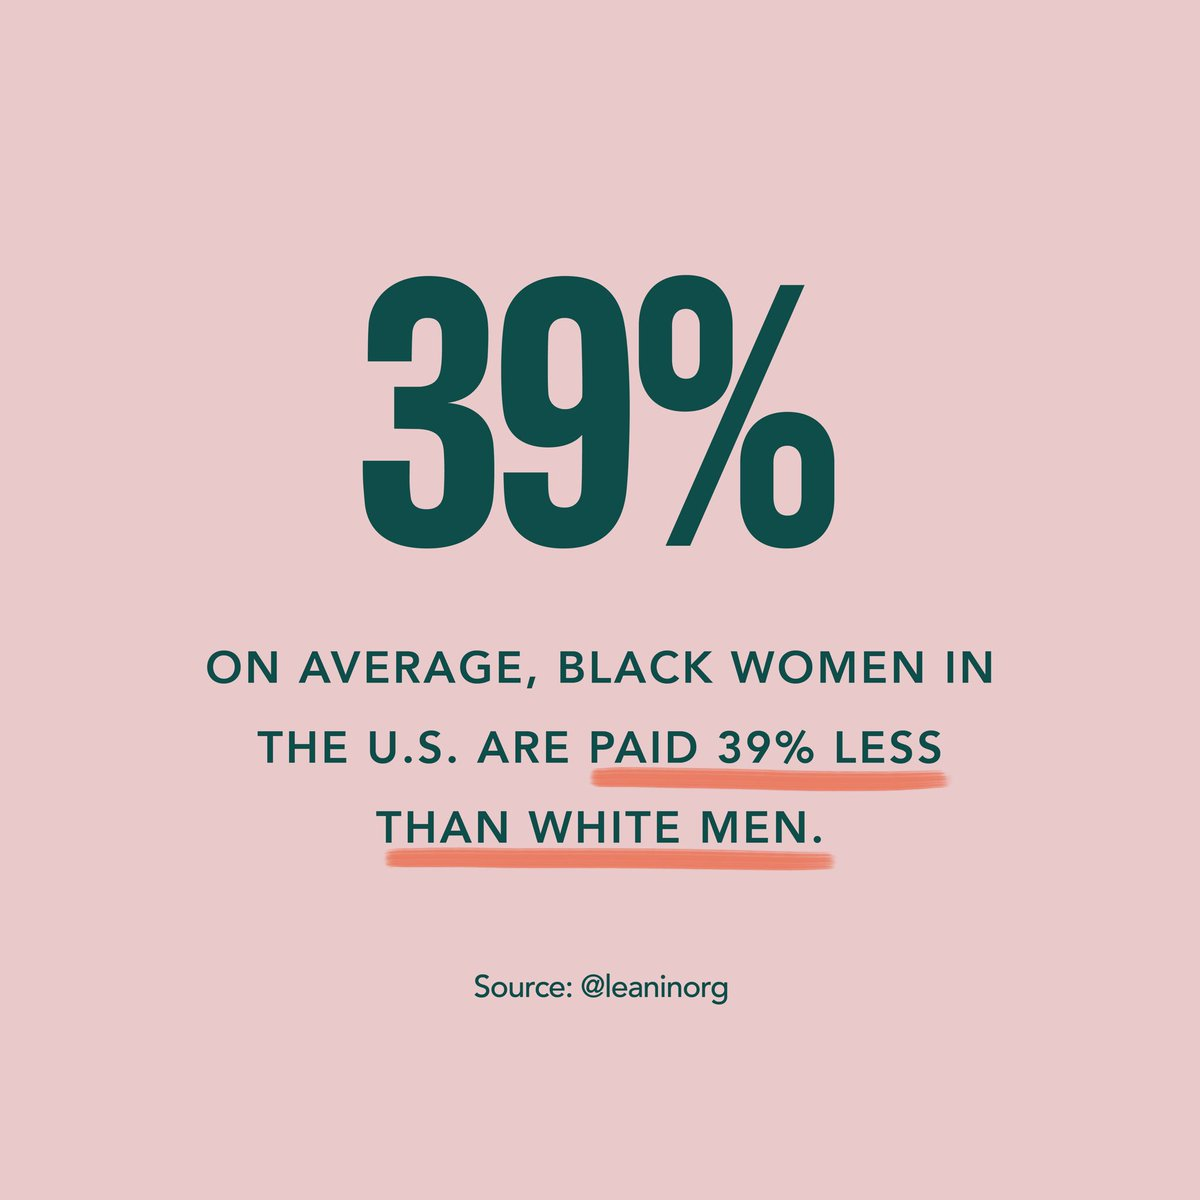 Today is #BlackWomensEqualPayDay which highlights the hard fact that Black Women in America have to work 599 days to make what white men get in 365 days. Black Women are paid 39% less than their white male counterparts. This is true in every industry. Hollywood included.